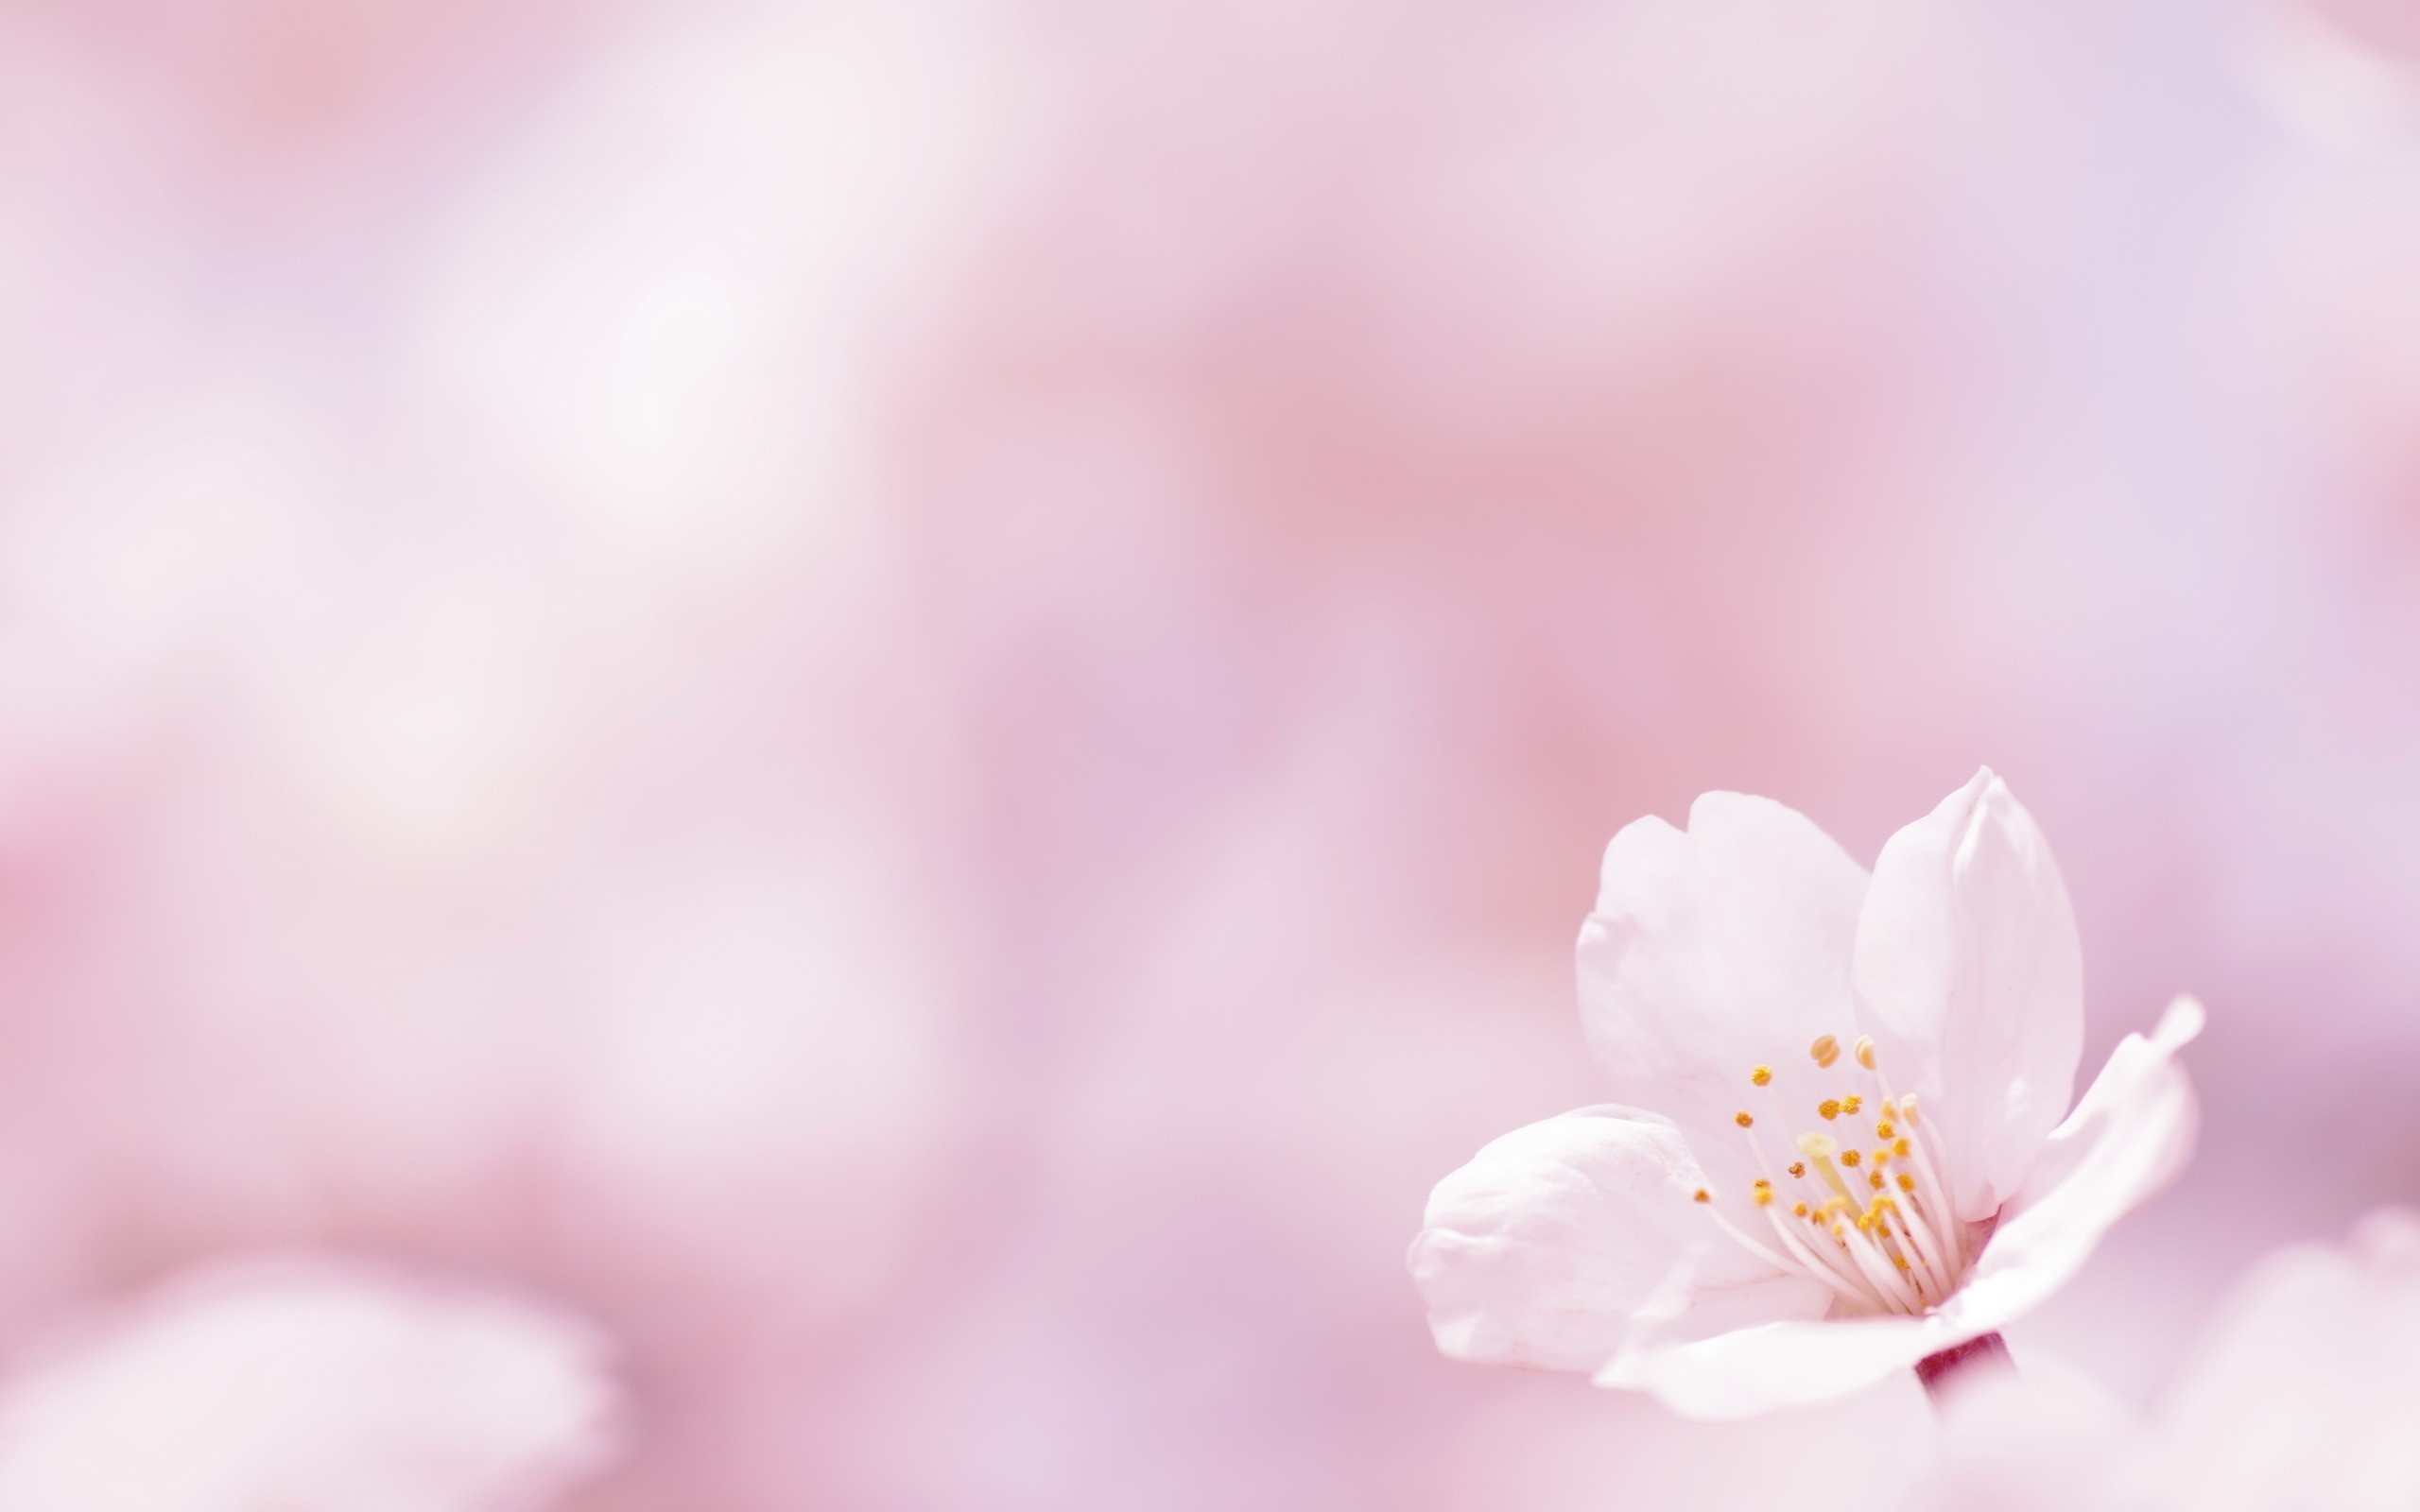 Flower on a white background wallpapers and images wallpapers #3830